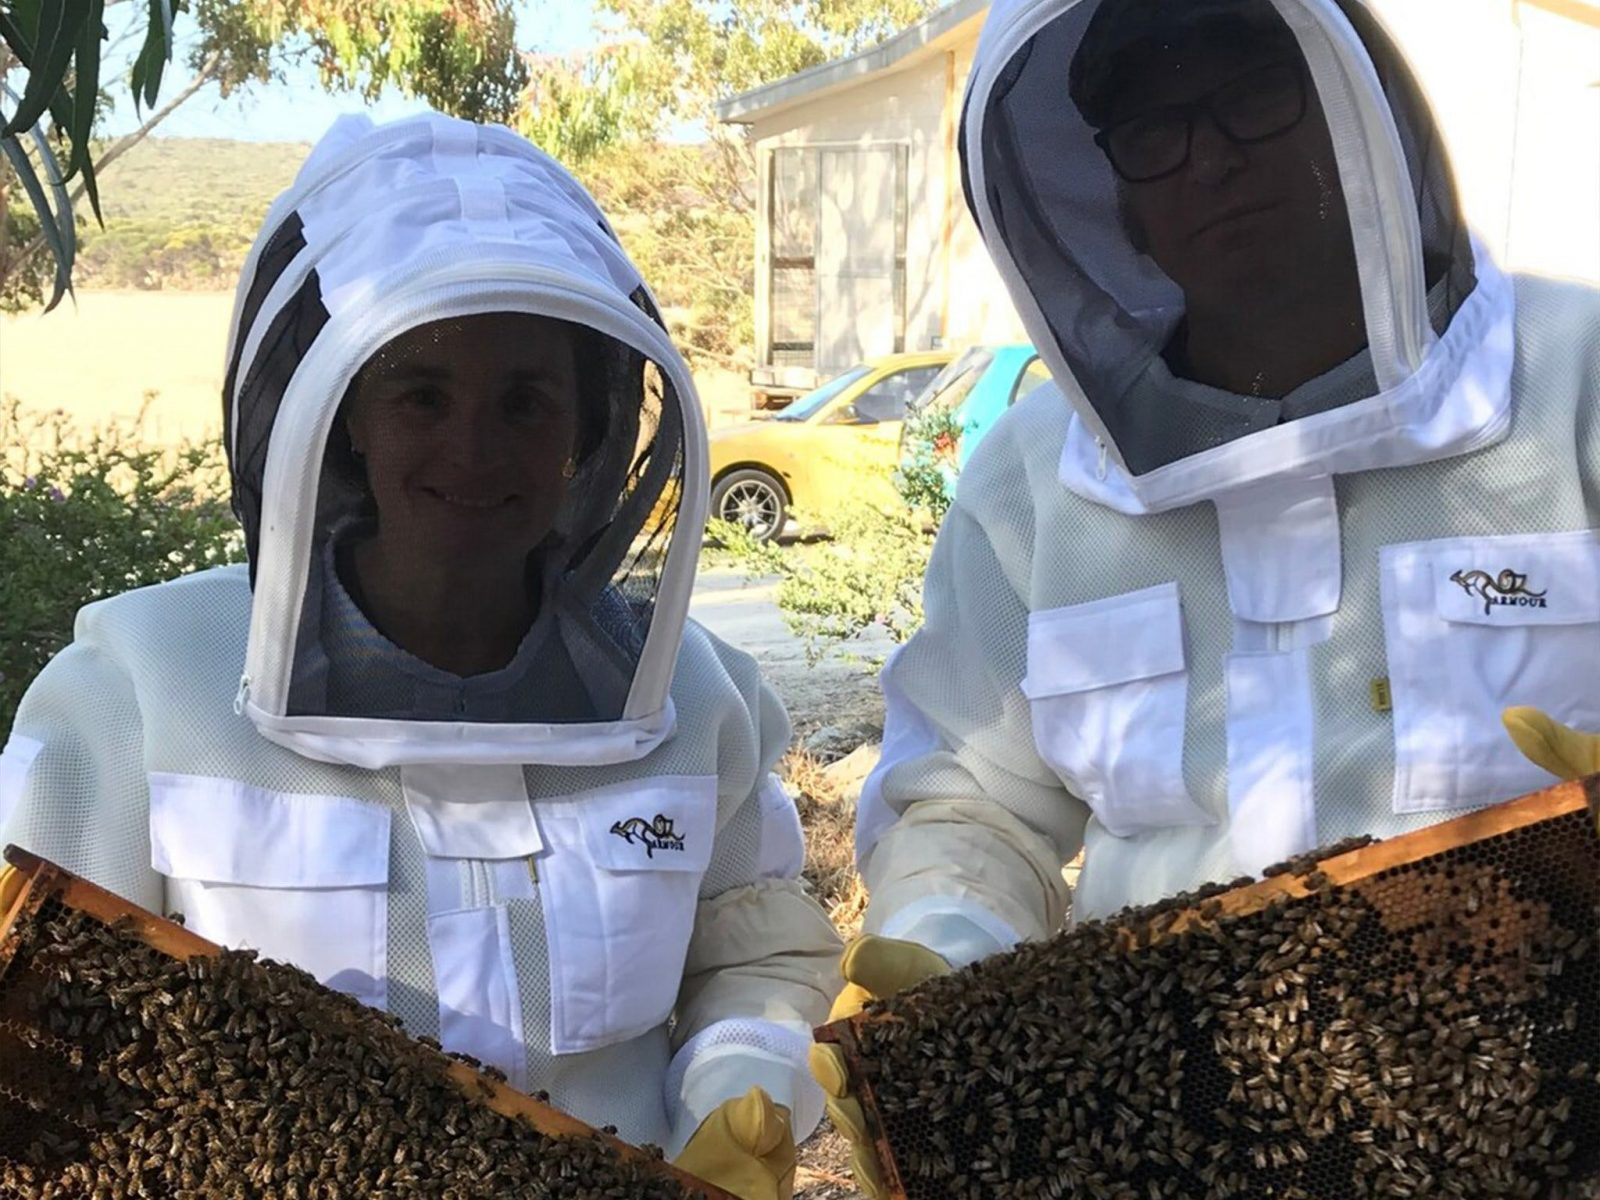 A Couple participating in the Experience holding a frame of bees